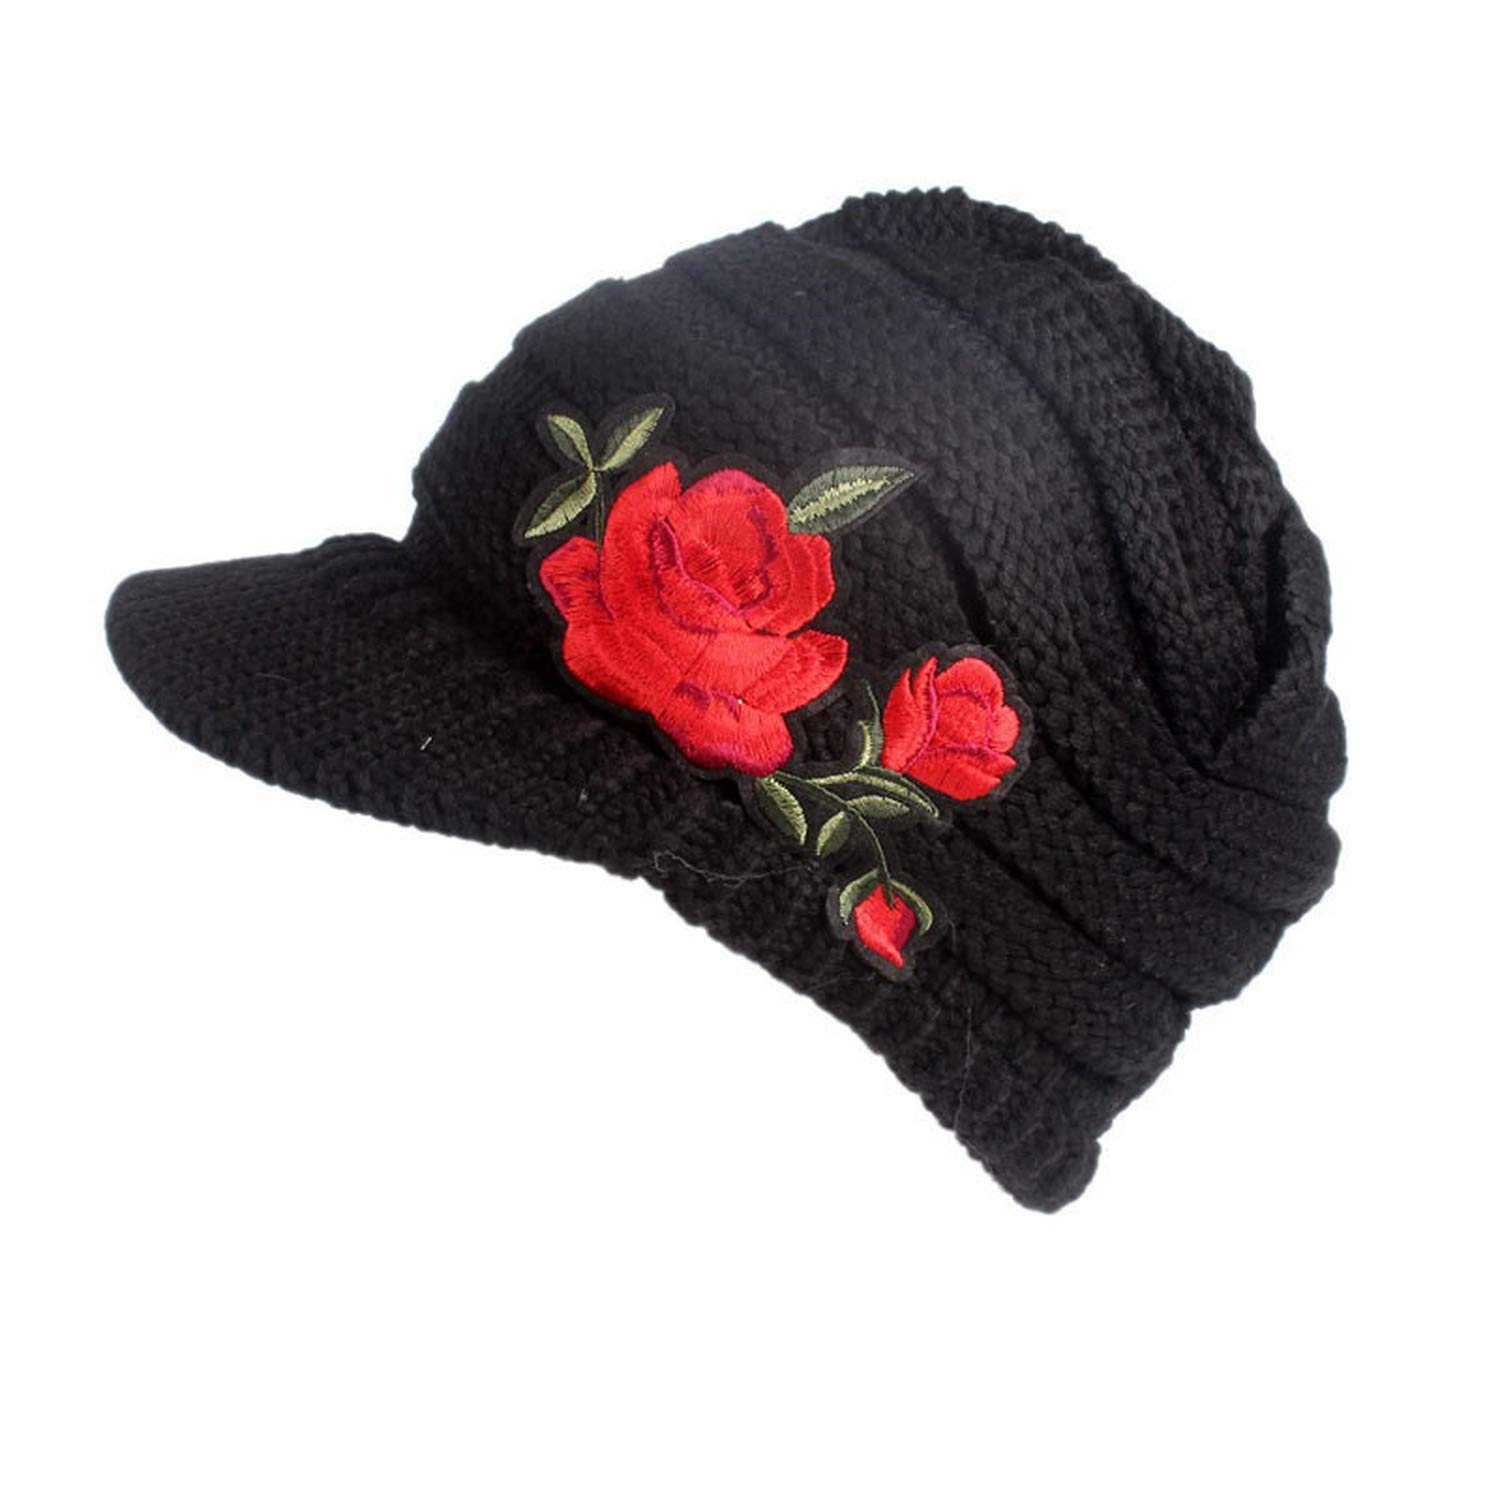 cc2ef9a1bc8dd Kerr Kellogg Embroidery Rose Beanie Casual hat with Visor for Women Button  Cap for Autumn Spring Winter Hats at Amazon Women s Clothing store